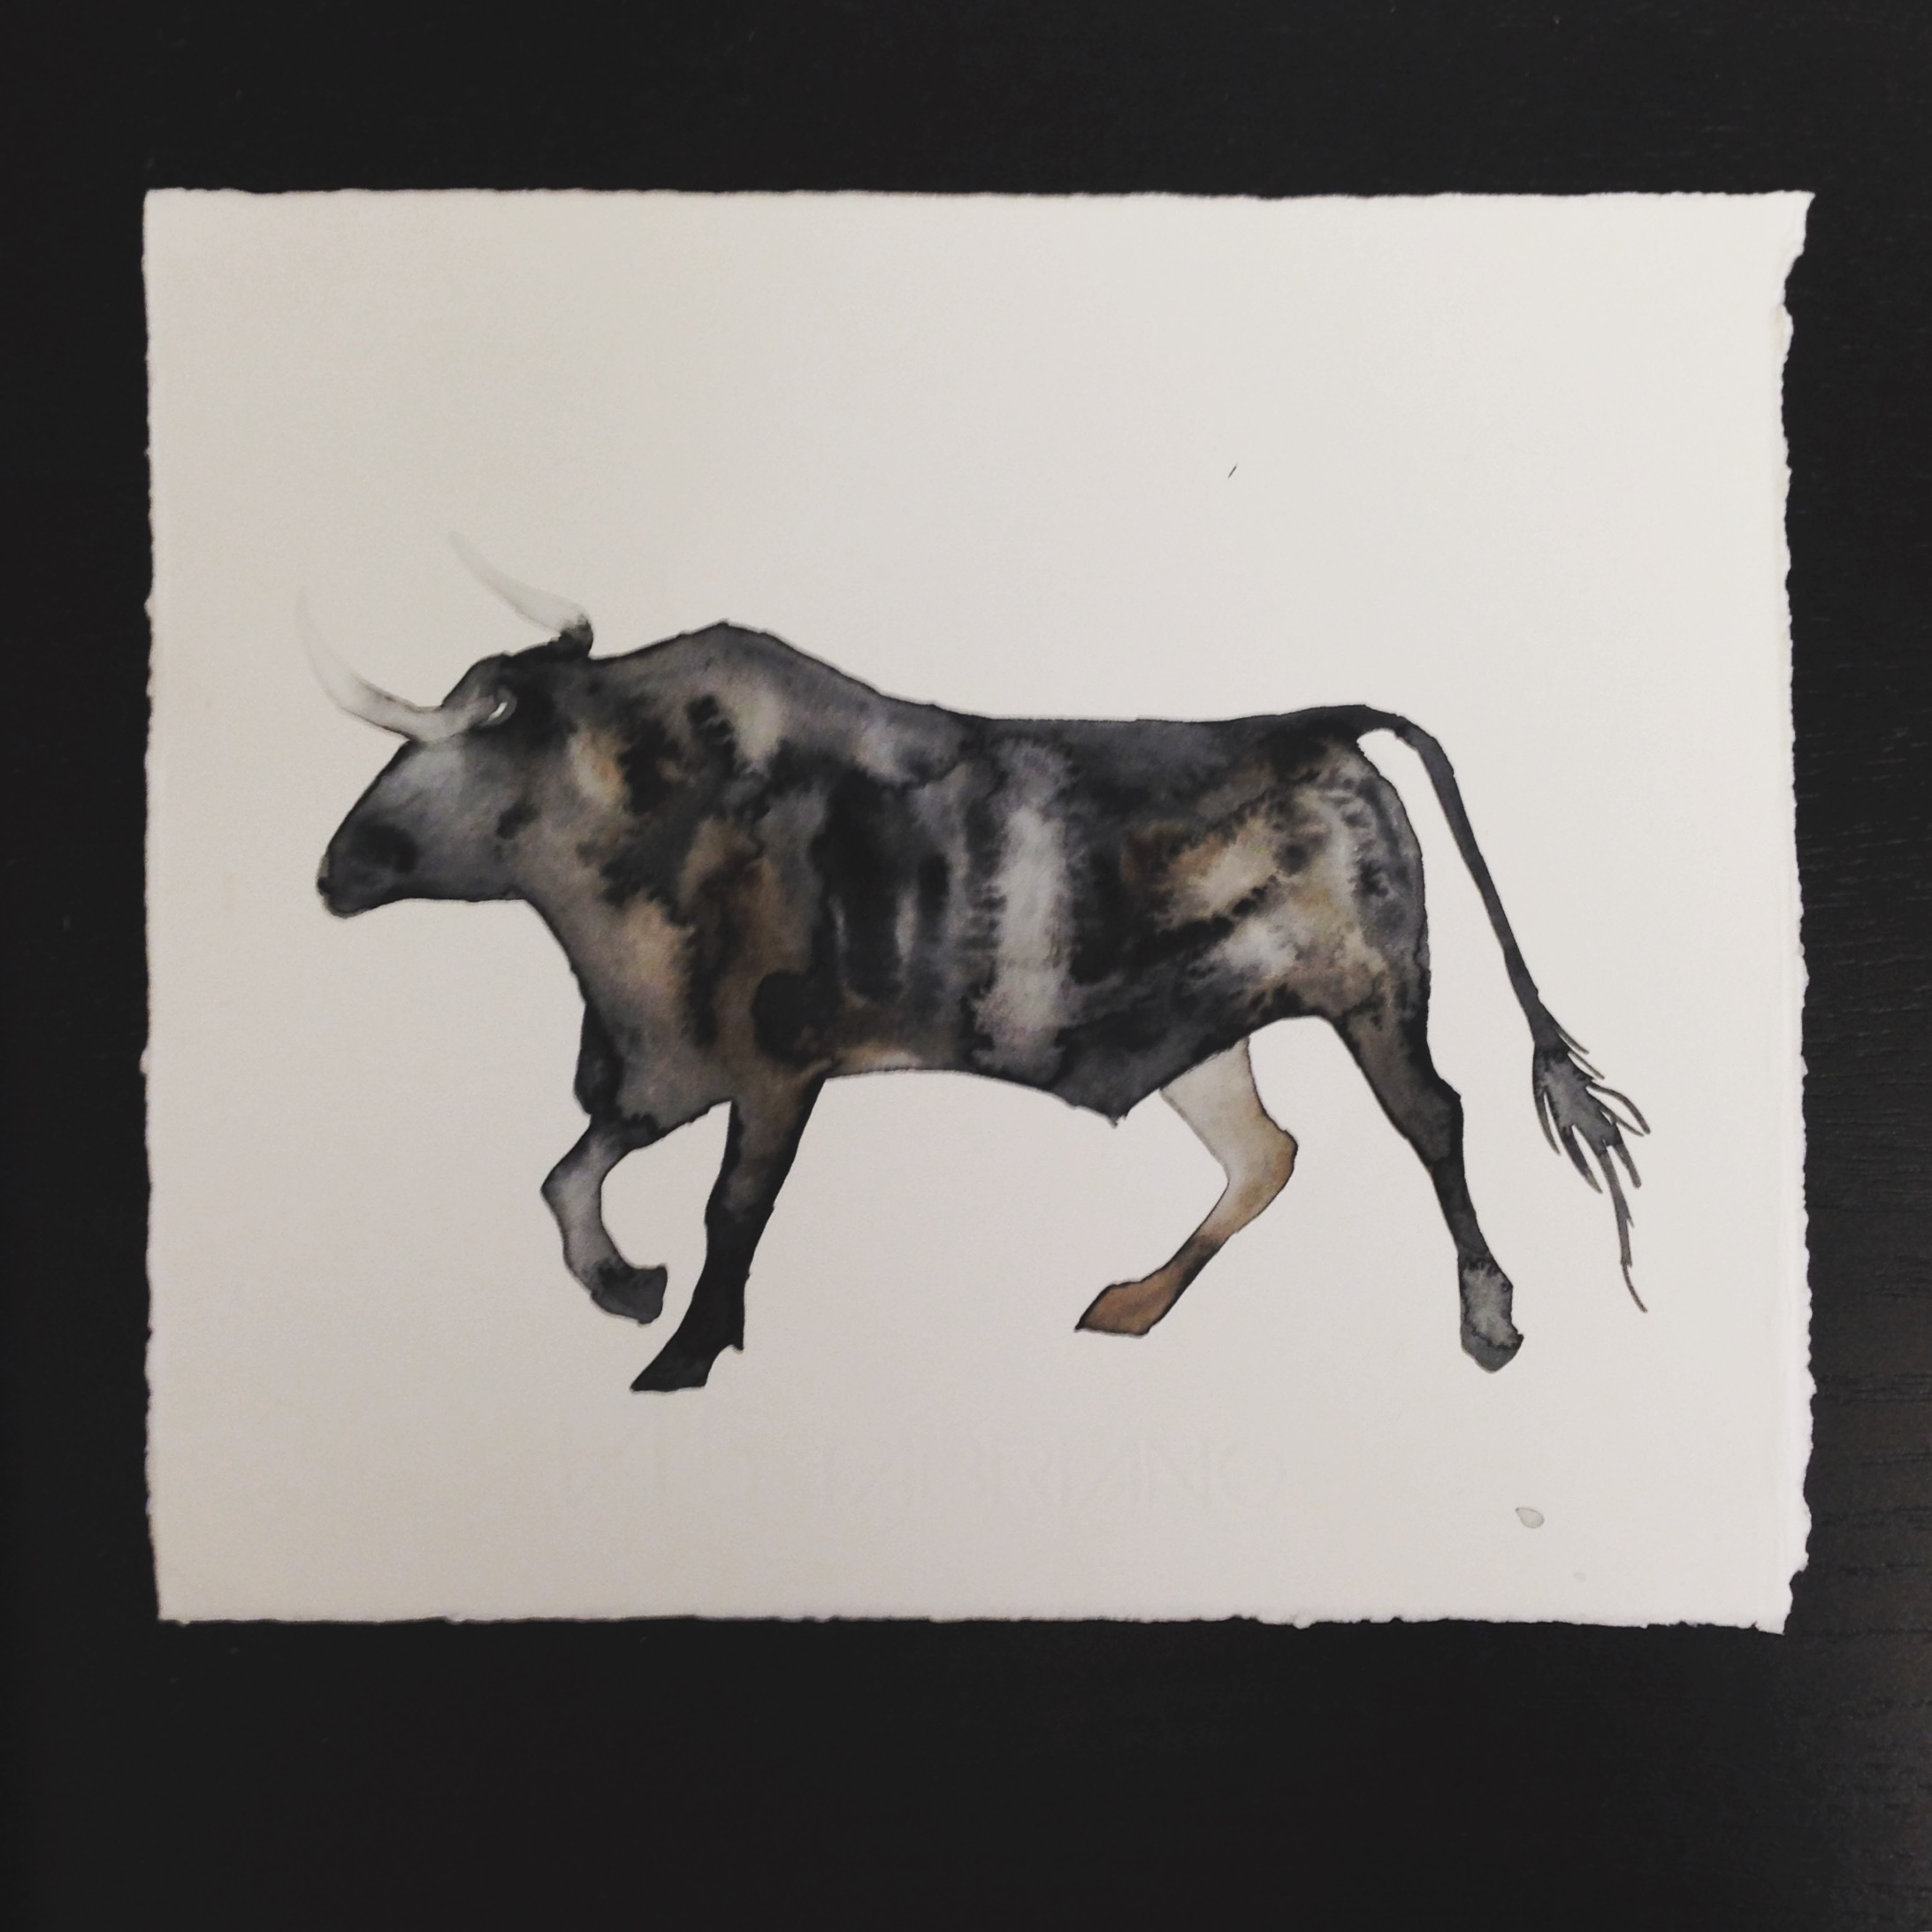 Bull watercolour by Lindsay McDonagh